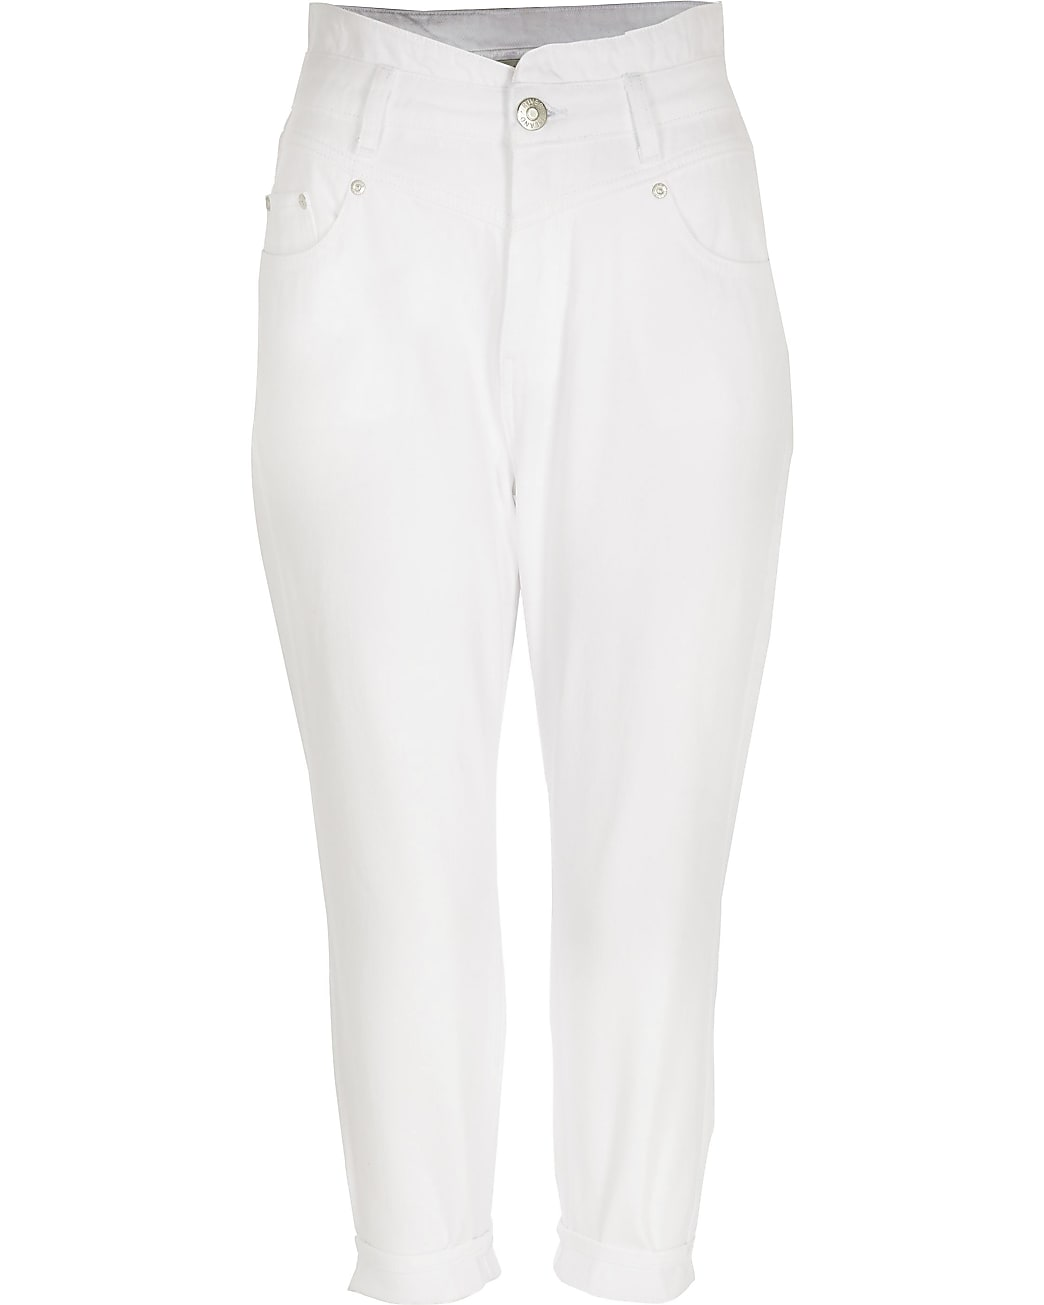 Petite white high waisted jeans